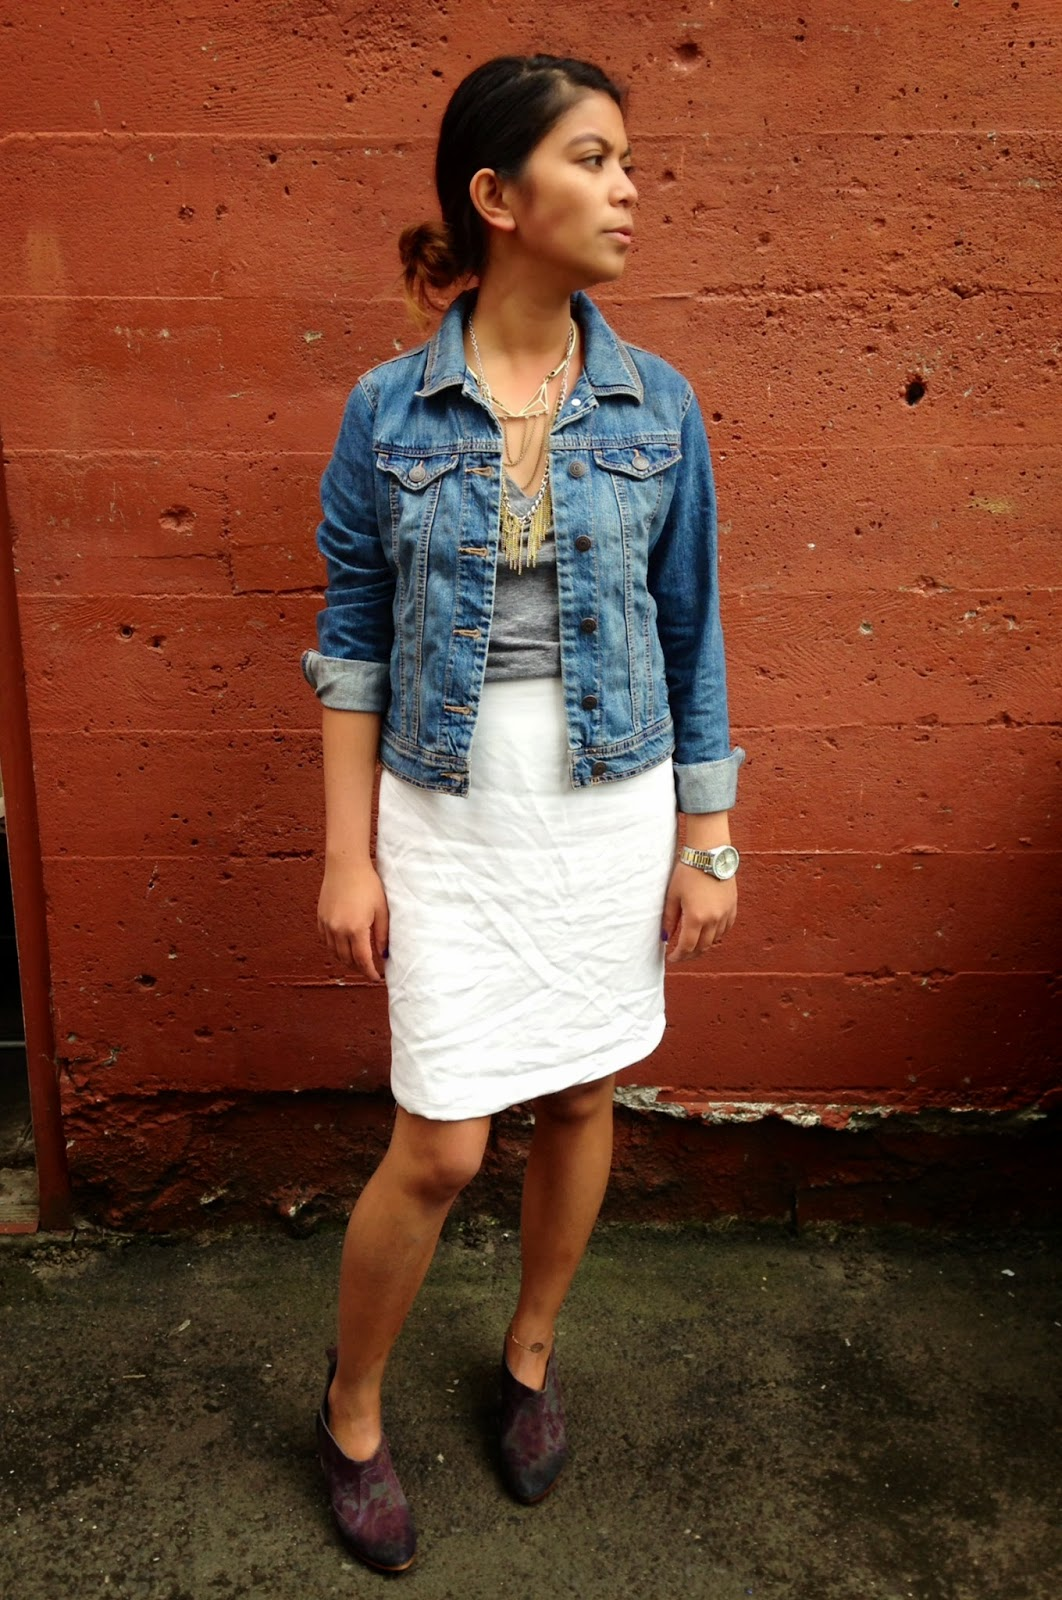 fashion blogger, look of the day, street style, portland blogger, august 2014, white skirt, jean jacket, booties, ootd, outfit of the day, look of the day